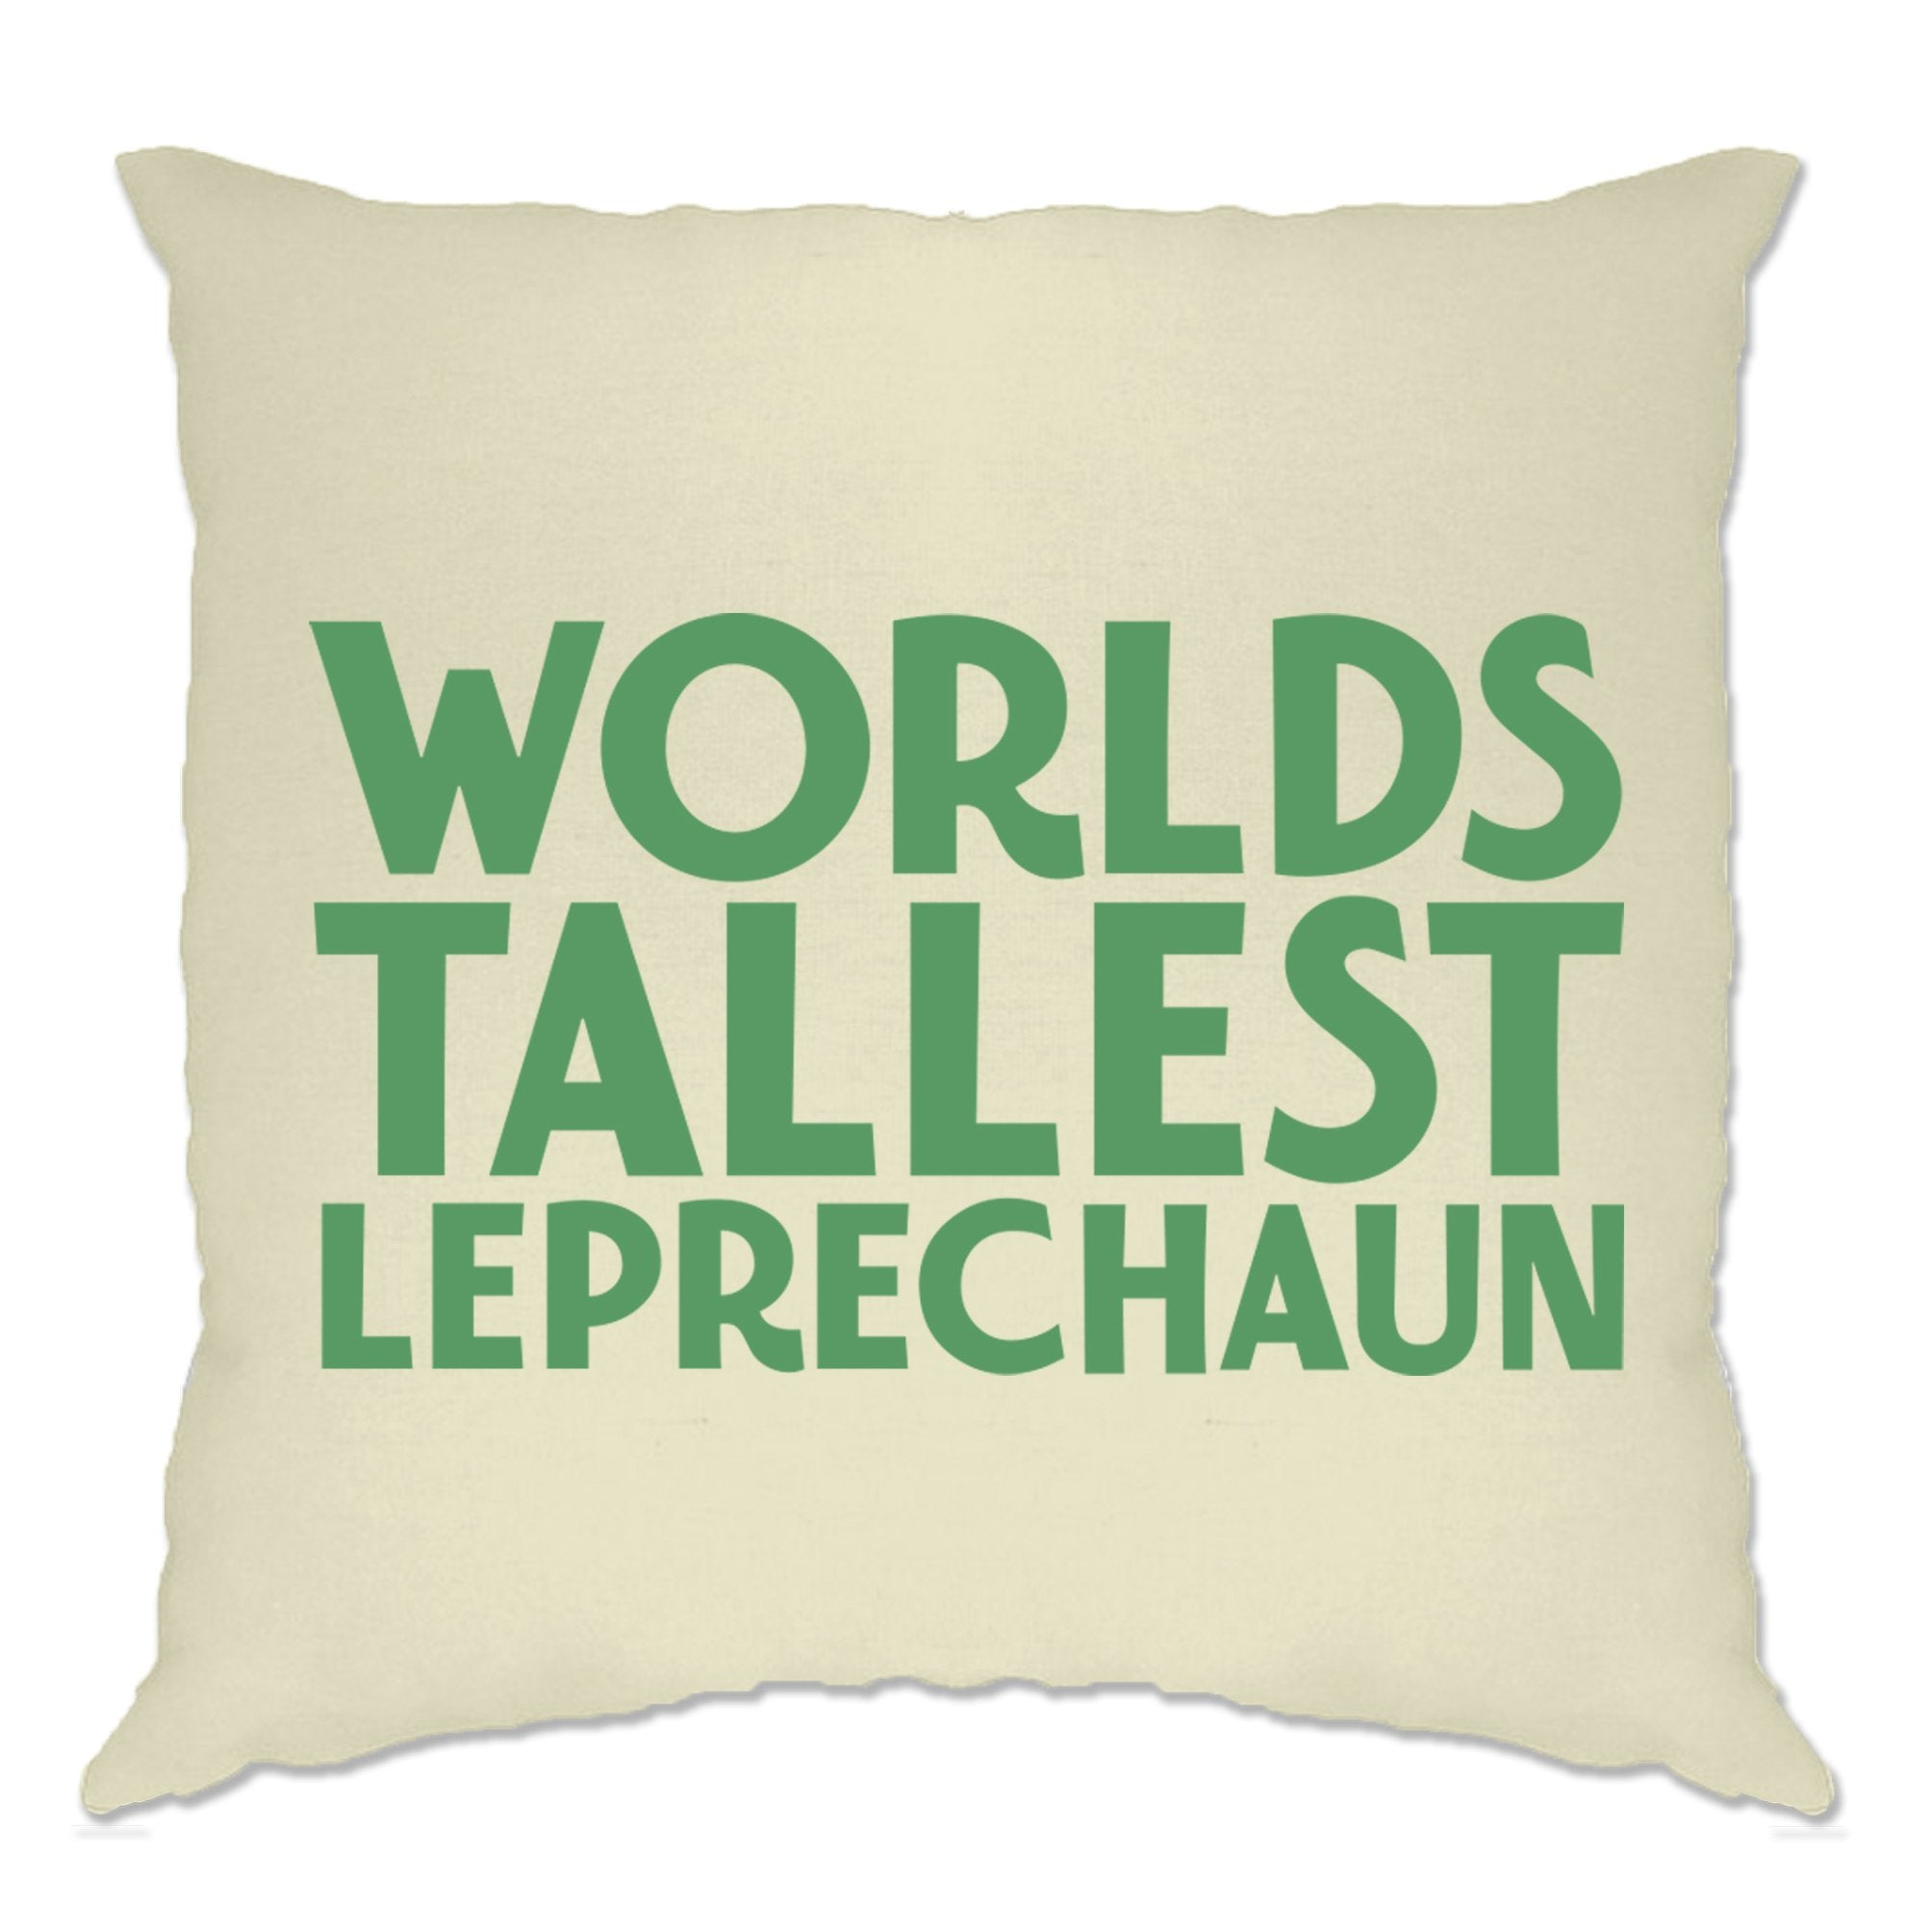 St Patricks Day Joke Cushion Cover Worlds Tallest Leprechaun